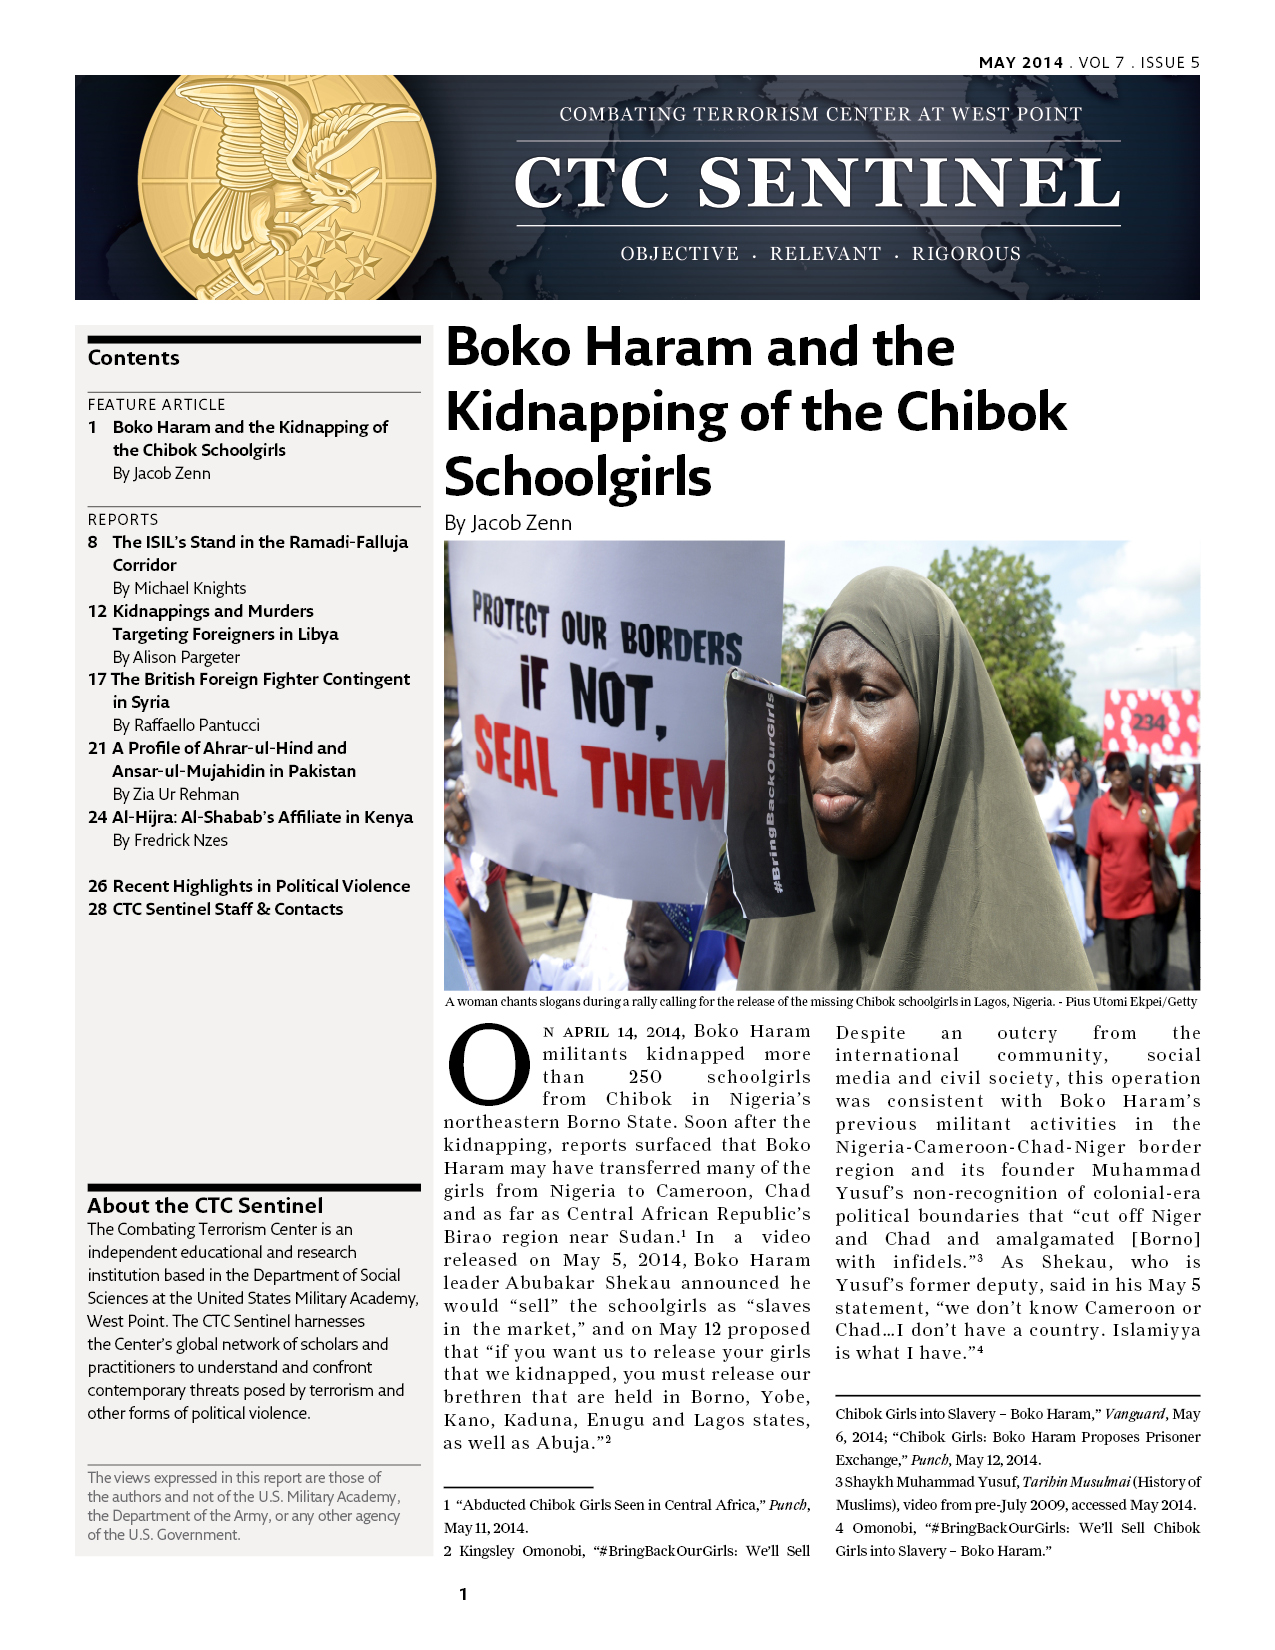 Boko Haram and the Kidnapping of the Chibok Schoolgirls